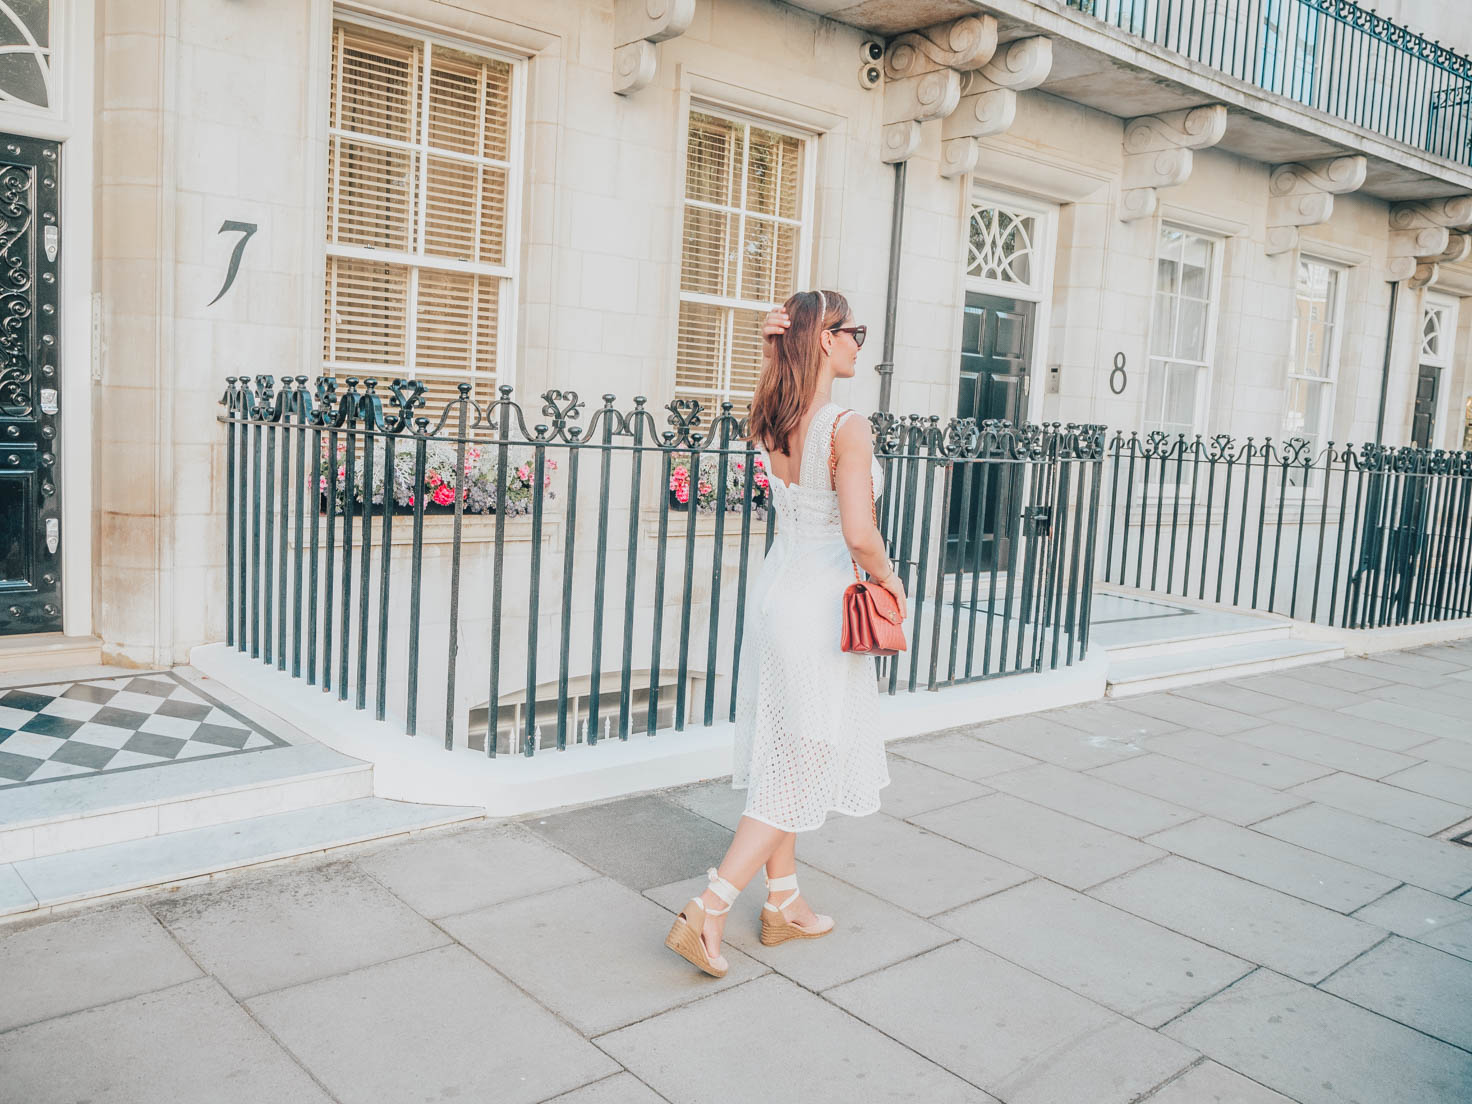 Petra from Chic Journal wearing Sandro white dress and Castaner espadrilles